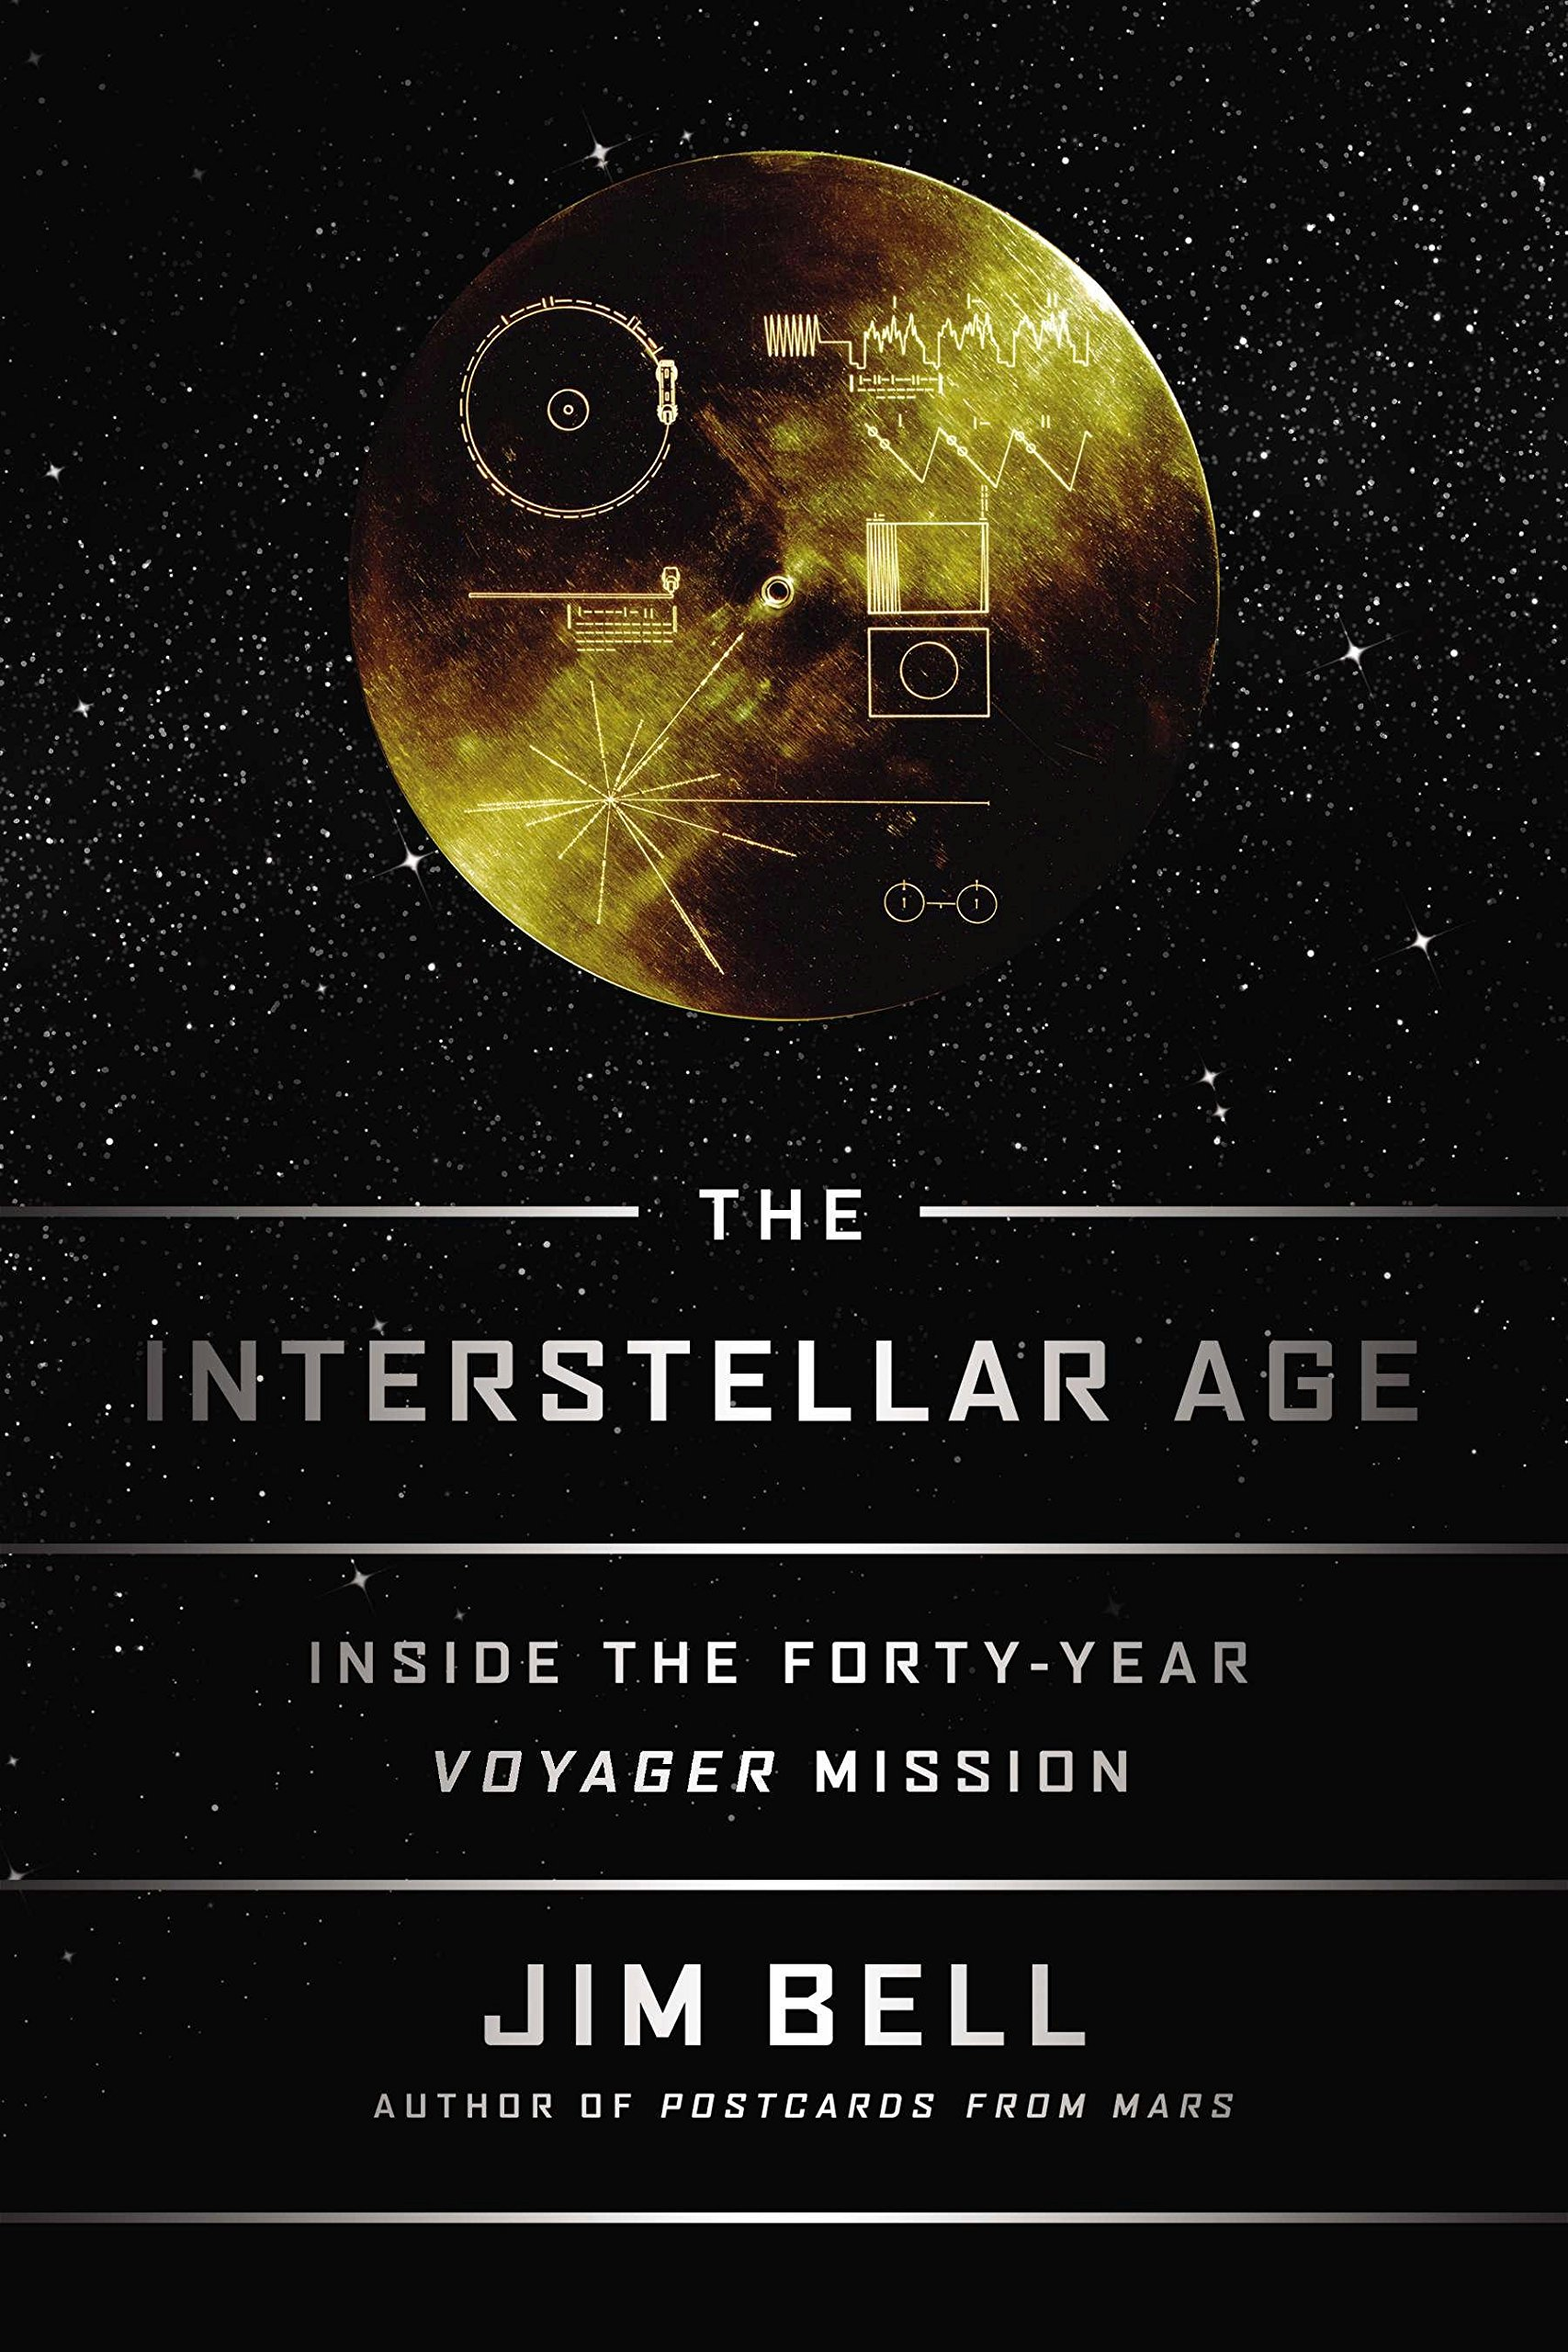 The Interstellar Age Inside Forty Year Voyager 451plutosolarsystemdiagramjpg Mission Jim Bell Livres